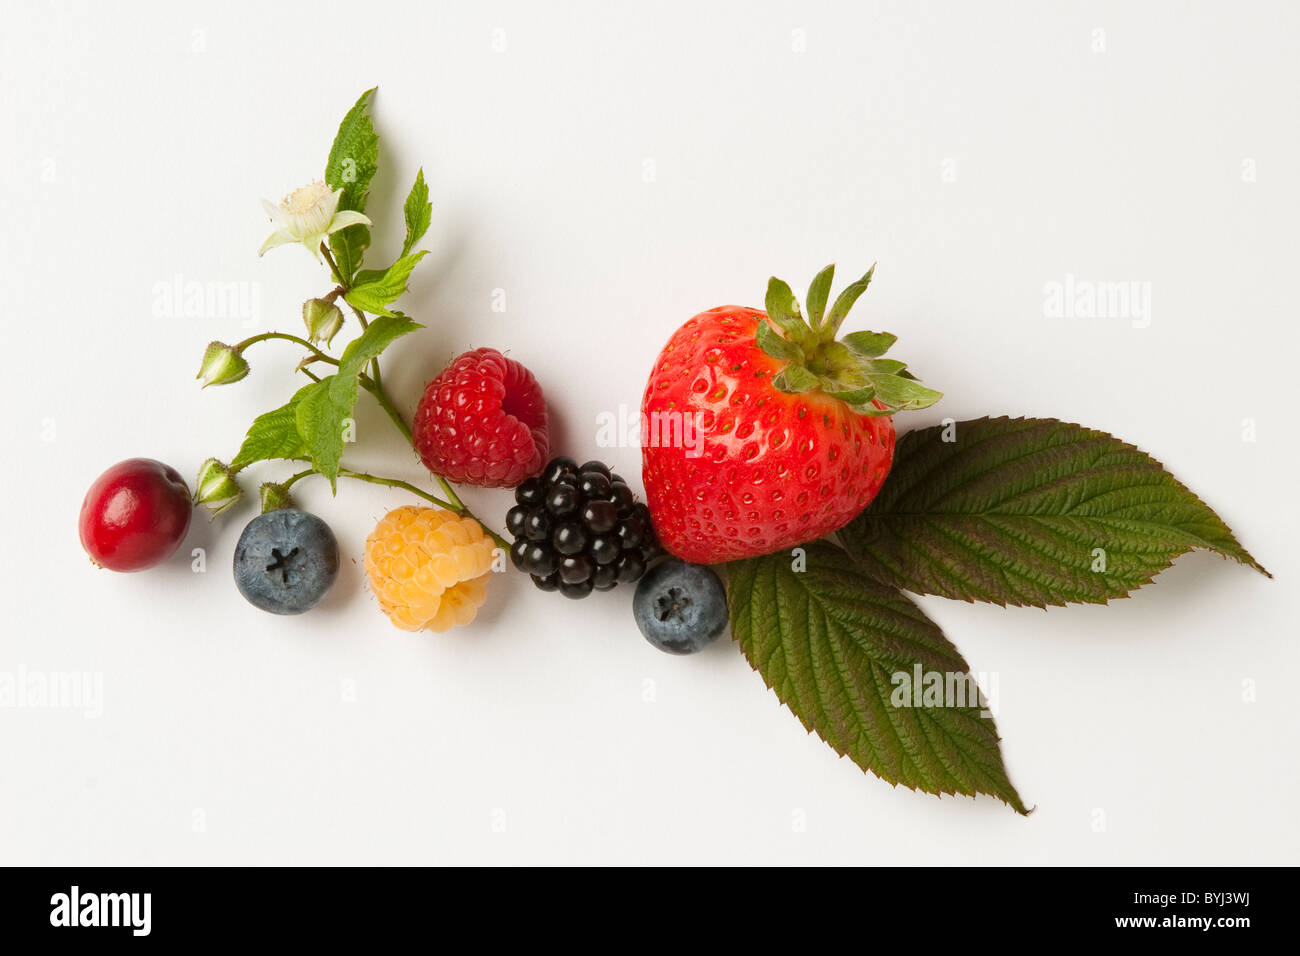 Mixture of berries: strawberry, red and golden raspberries, blackberry, blueberry and cranberry with leaves and Stock Photo